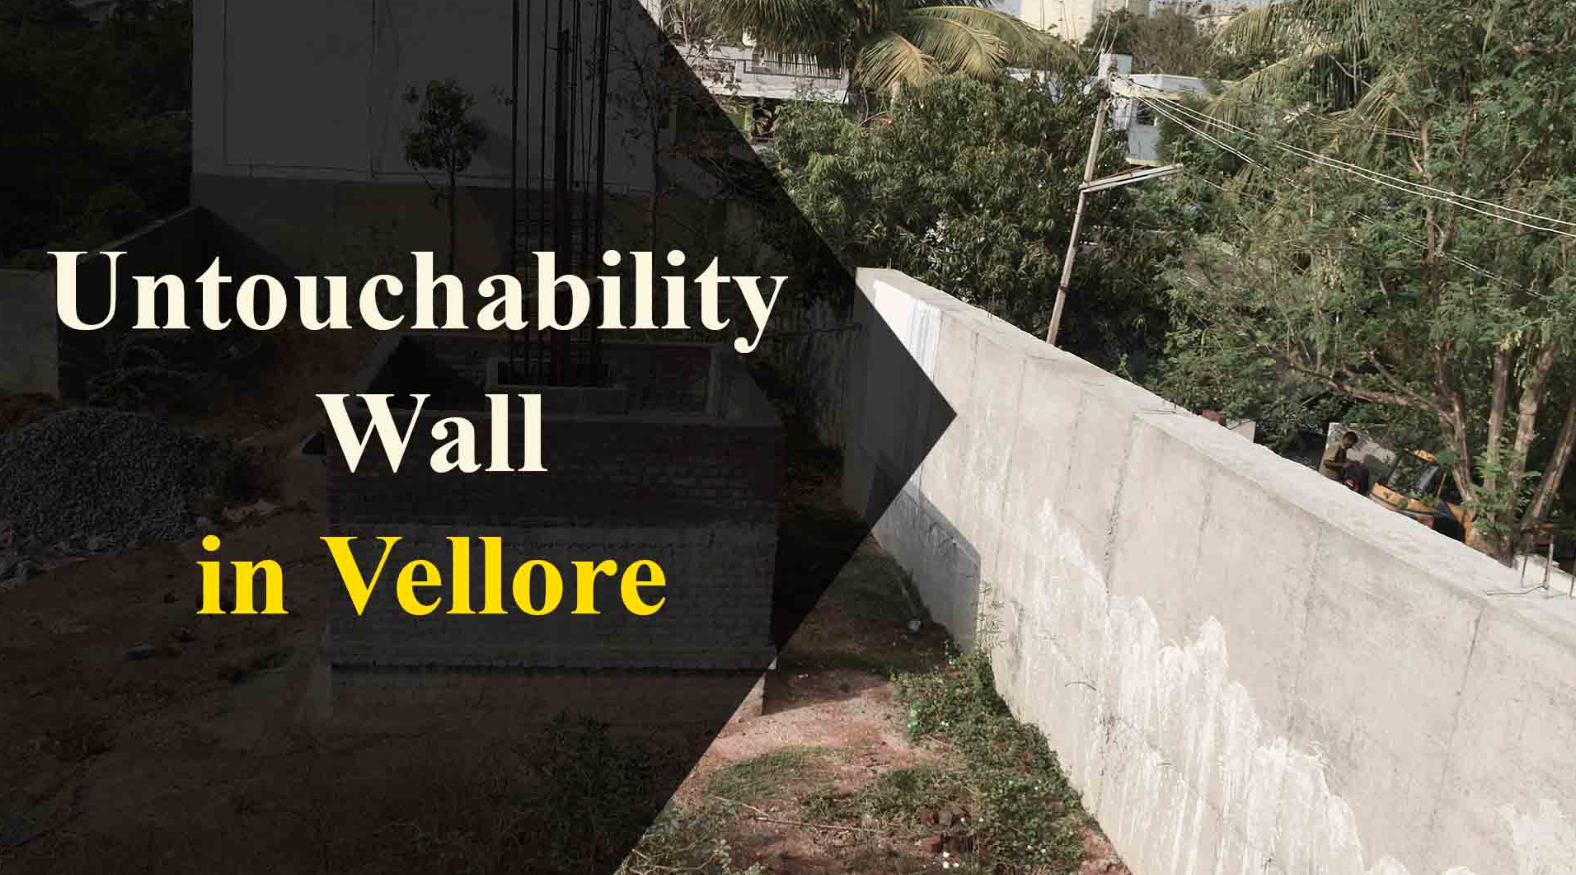 'Untouchability Wall' in TN